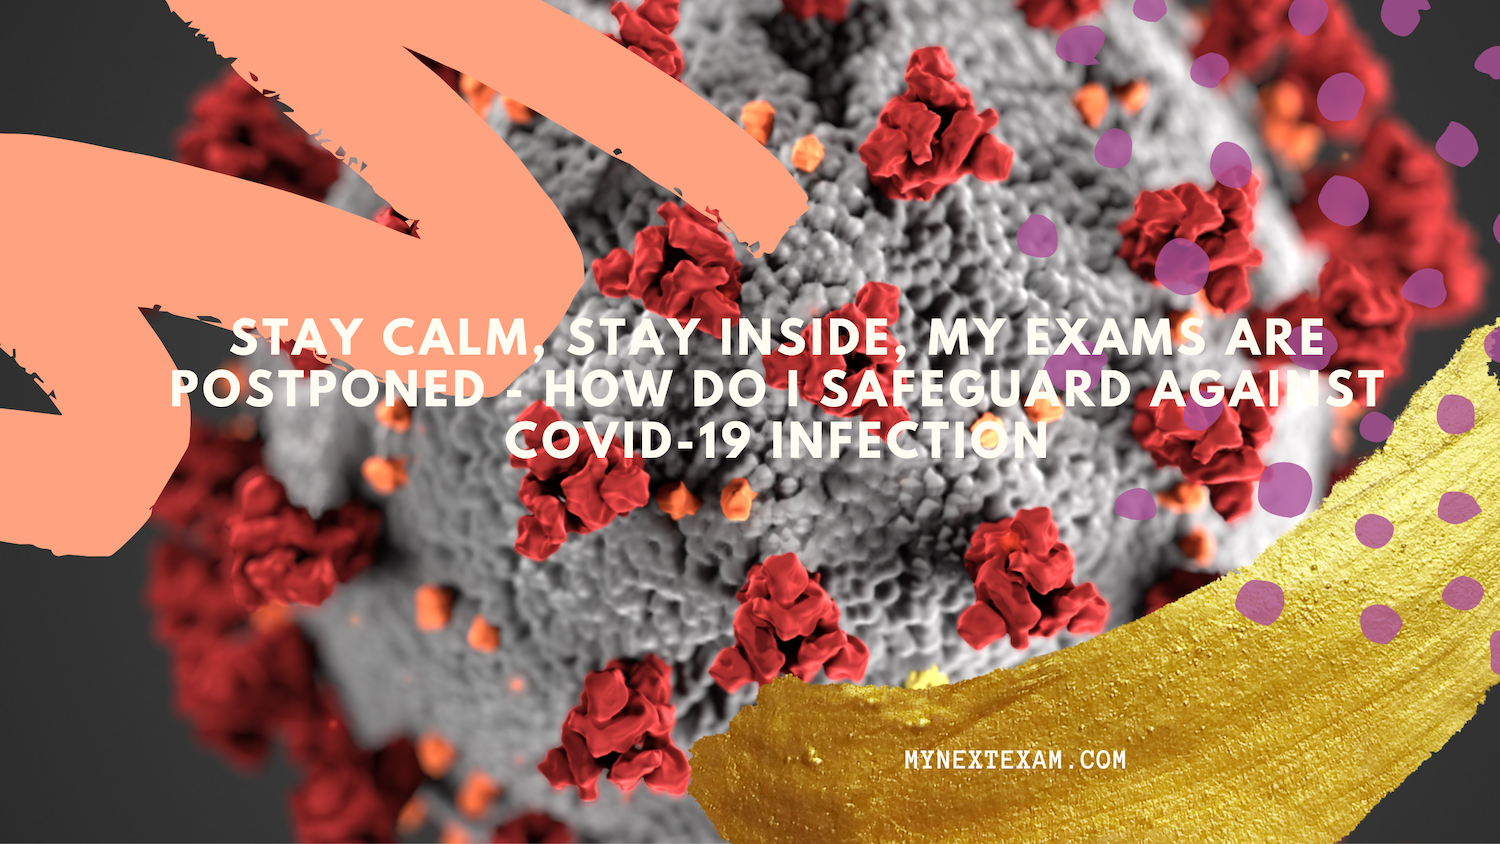 Stay calm, Stay inside, My Exams are postponed: How do I safeguard against Covid-19 infection